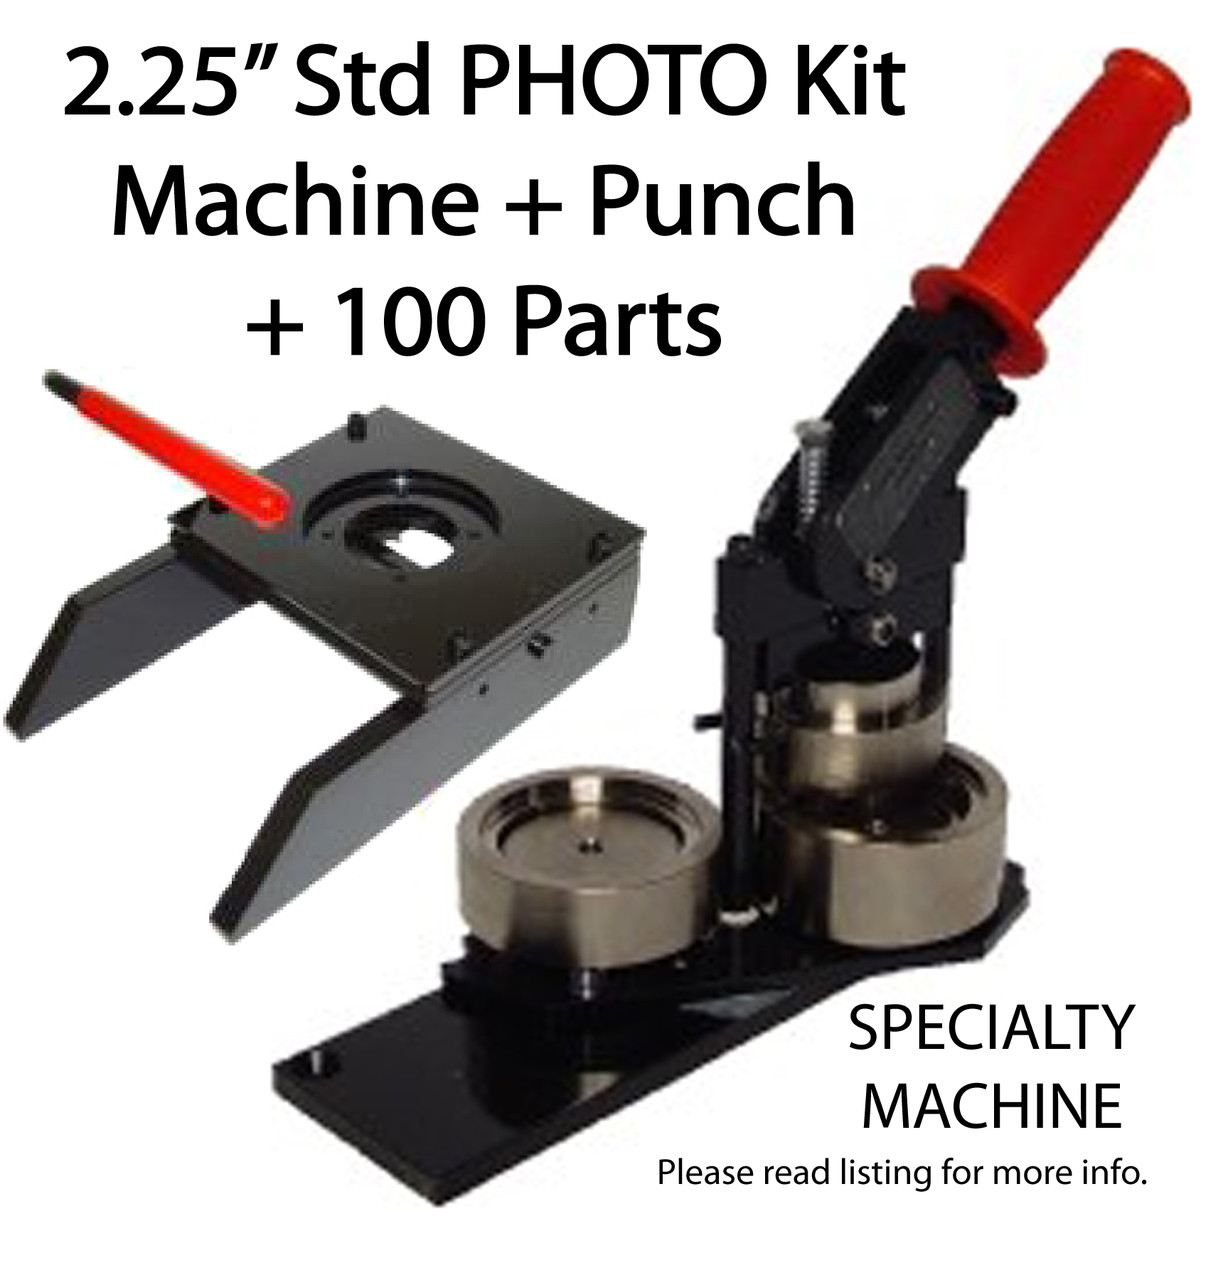 1000 Pin Back Button Parts Tecre Button Making Kit 2.25 Graphic Punch Machine